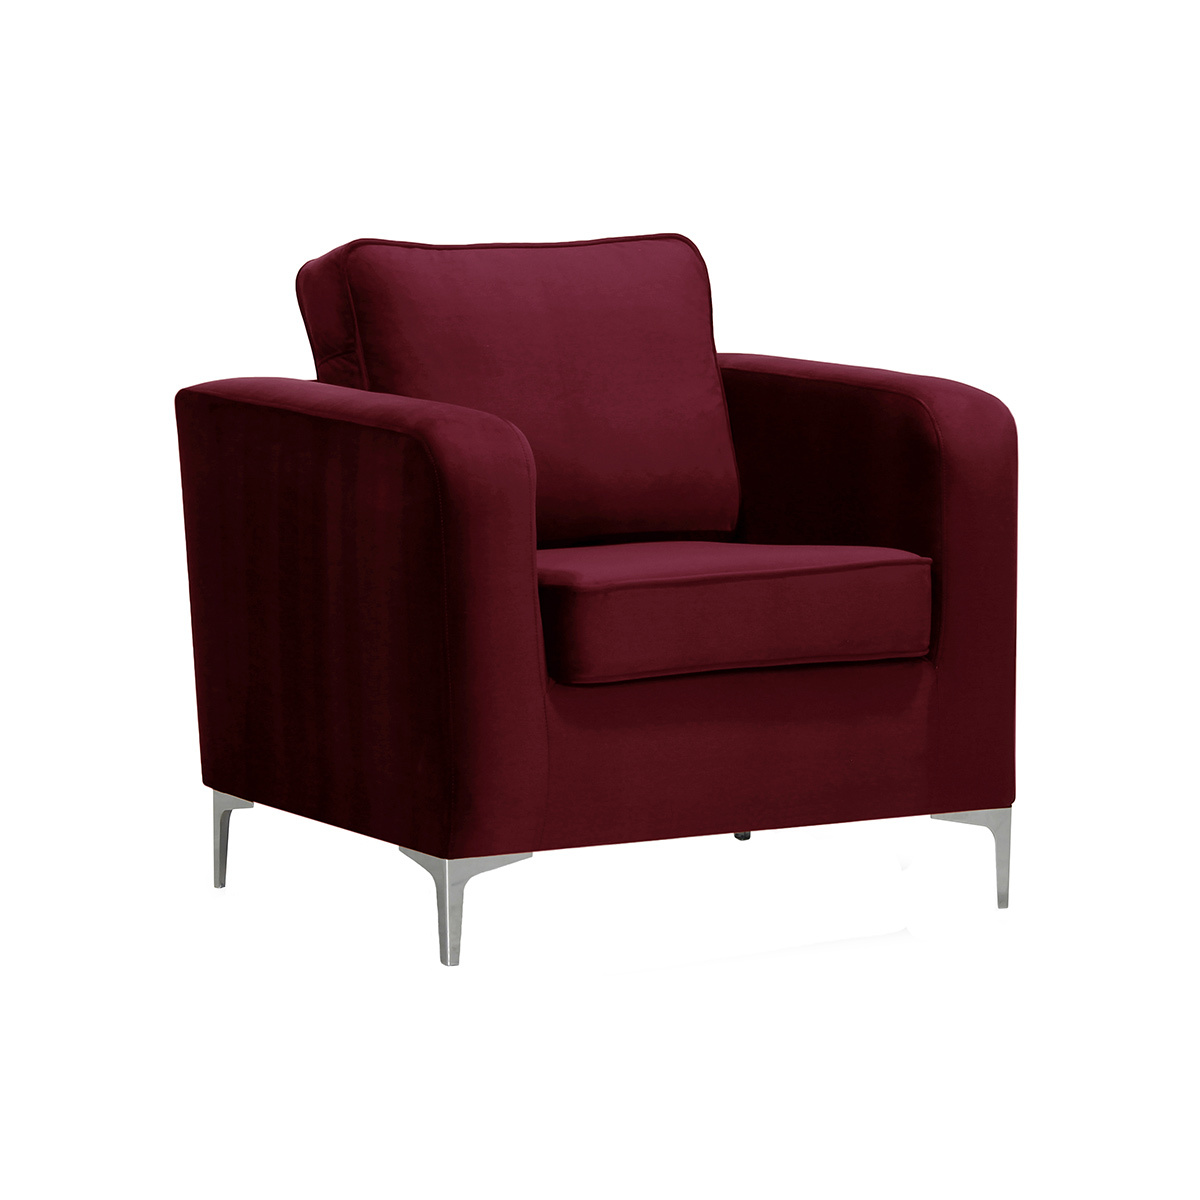 Poltrona design in velluto bordeaux HARRY